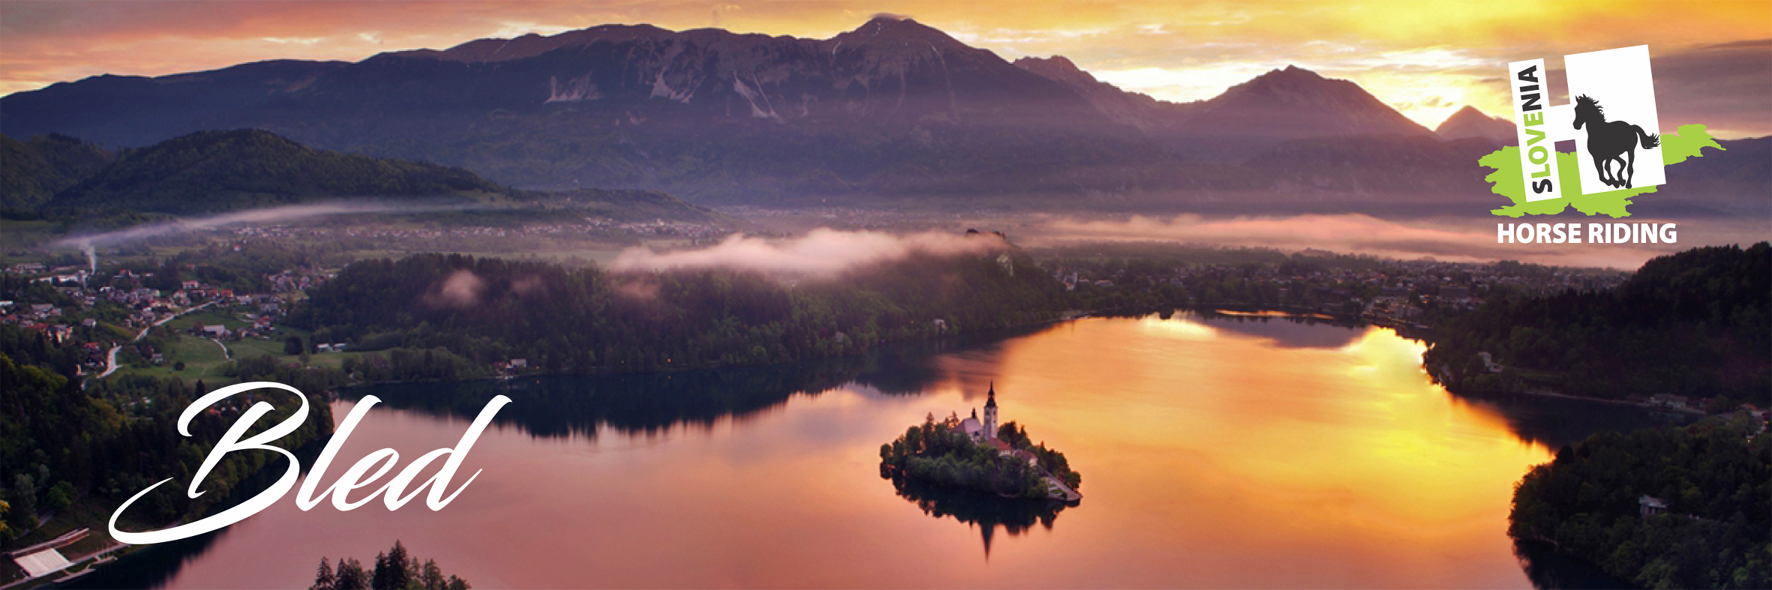 tours_bled_slider_1.jpg